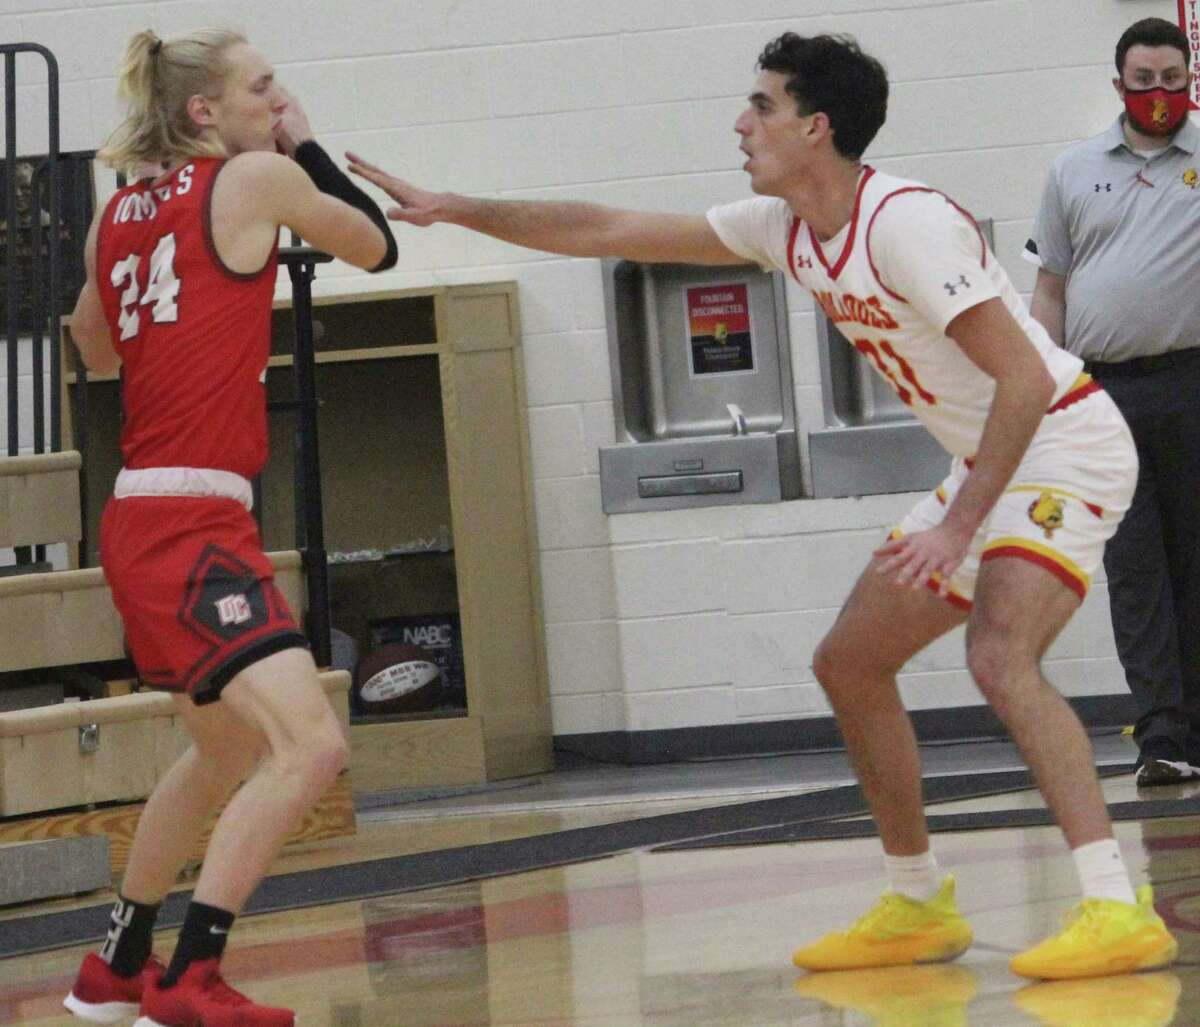 Ferris State's Michael Peterson (right) guards Olivet College's Britton Angell, formerly of Crossroads Charter Academy, at a basketball game in Wink Arena last month. (Pioneer photo/John Raffel)